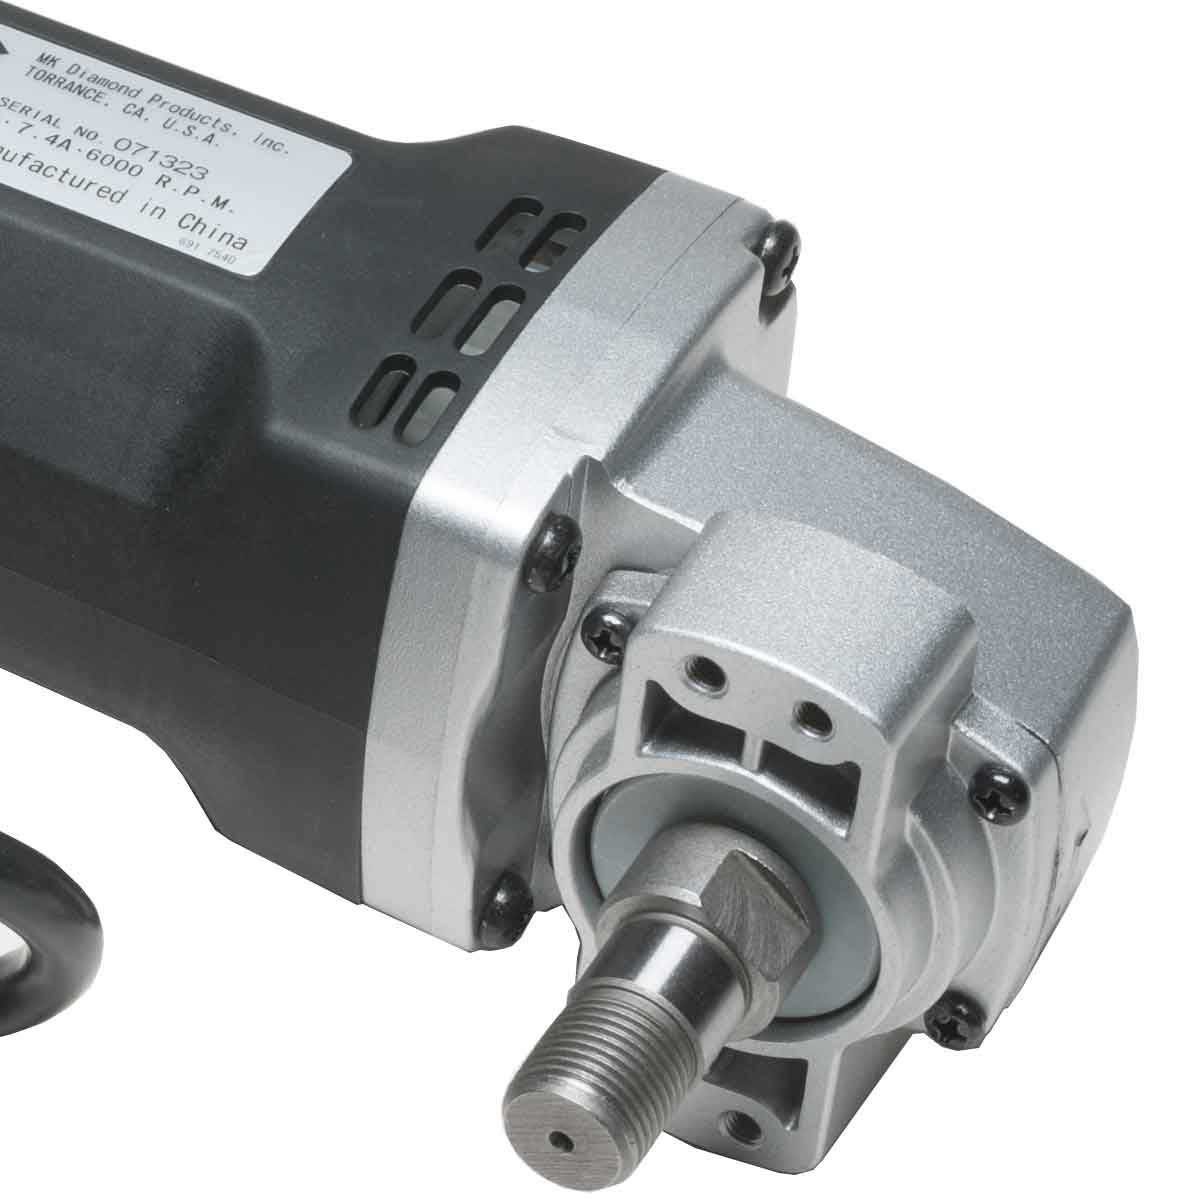 MK replacement motor for direct drive tile saws